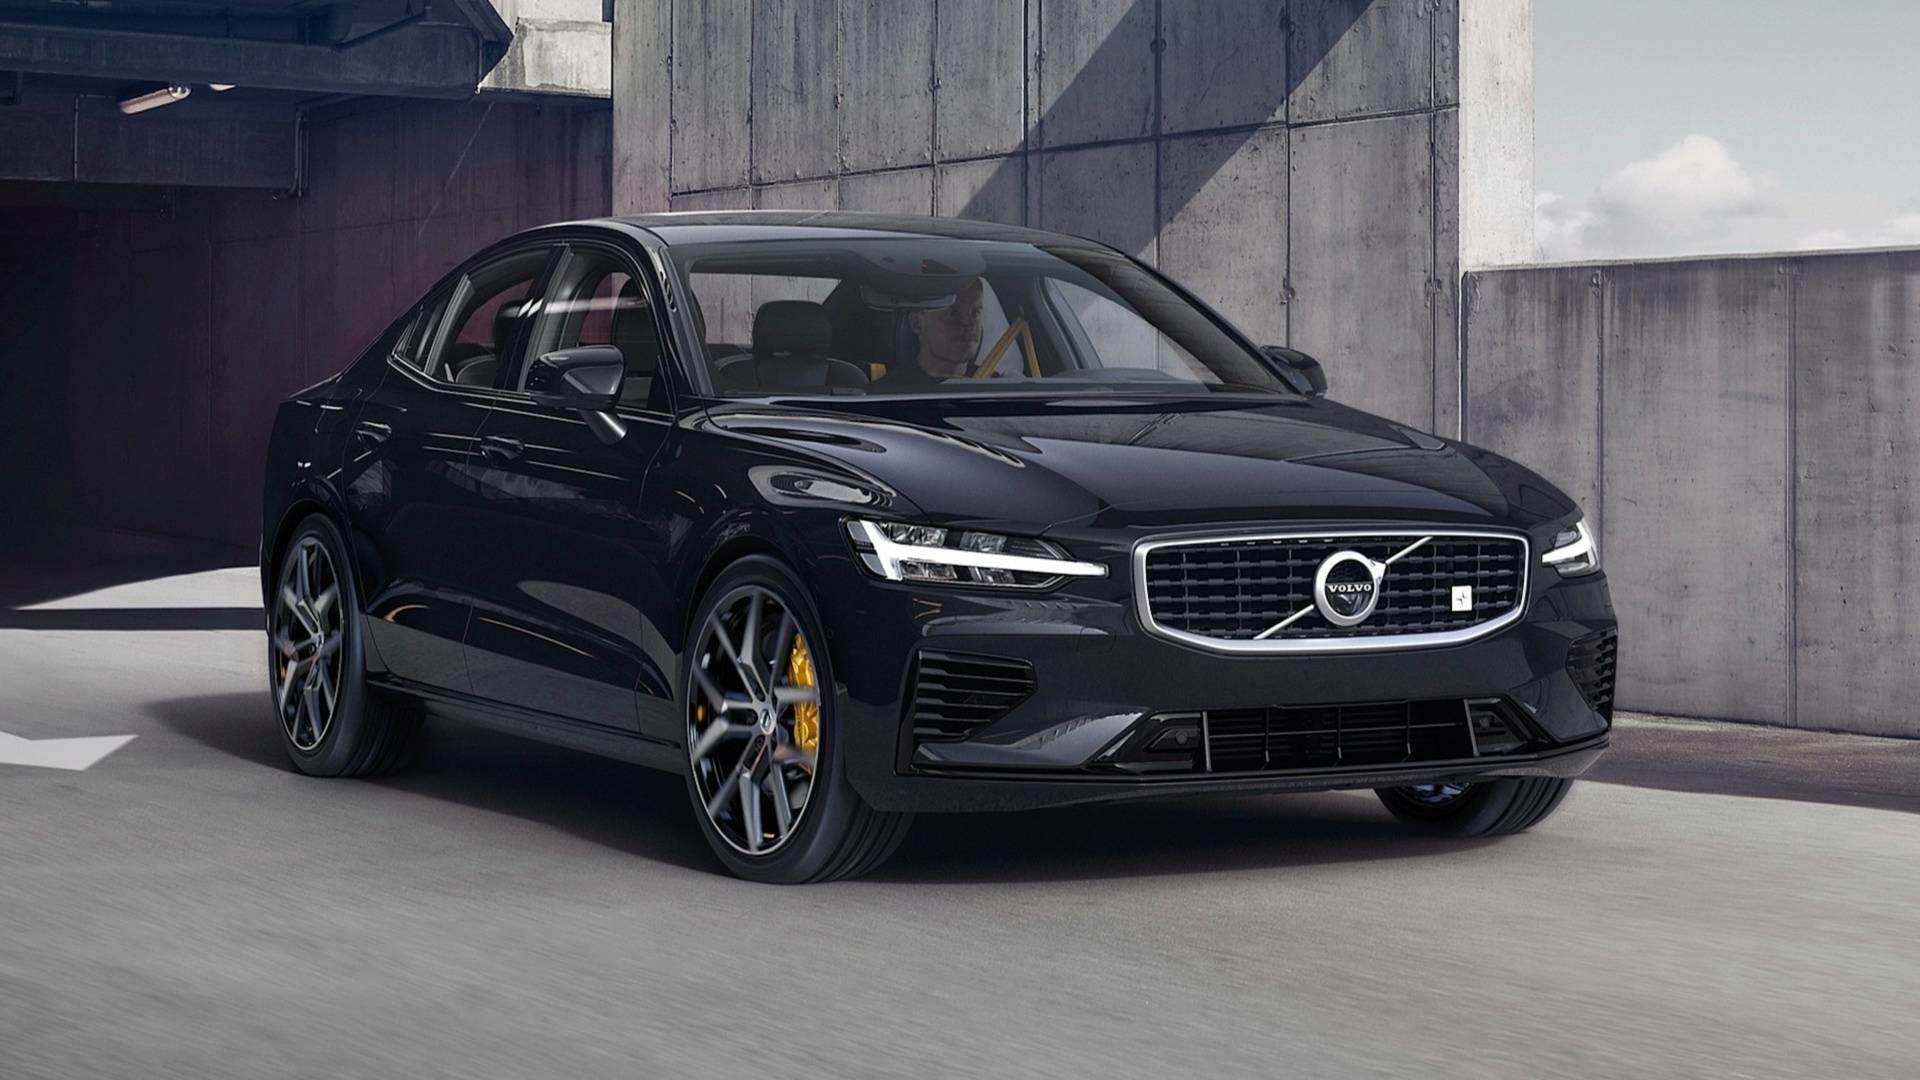 46 The Best 2020 Volvo S60 Overview